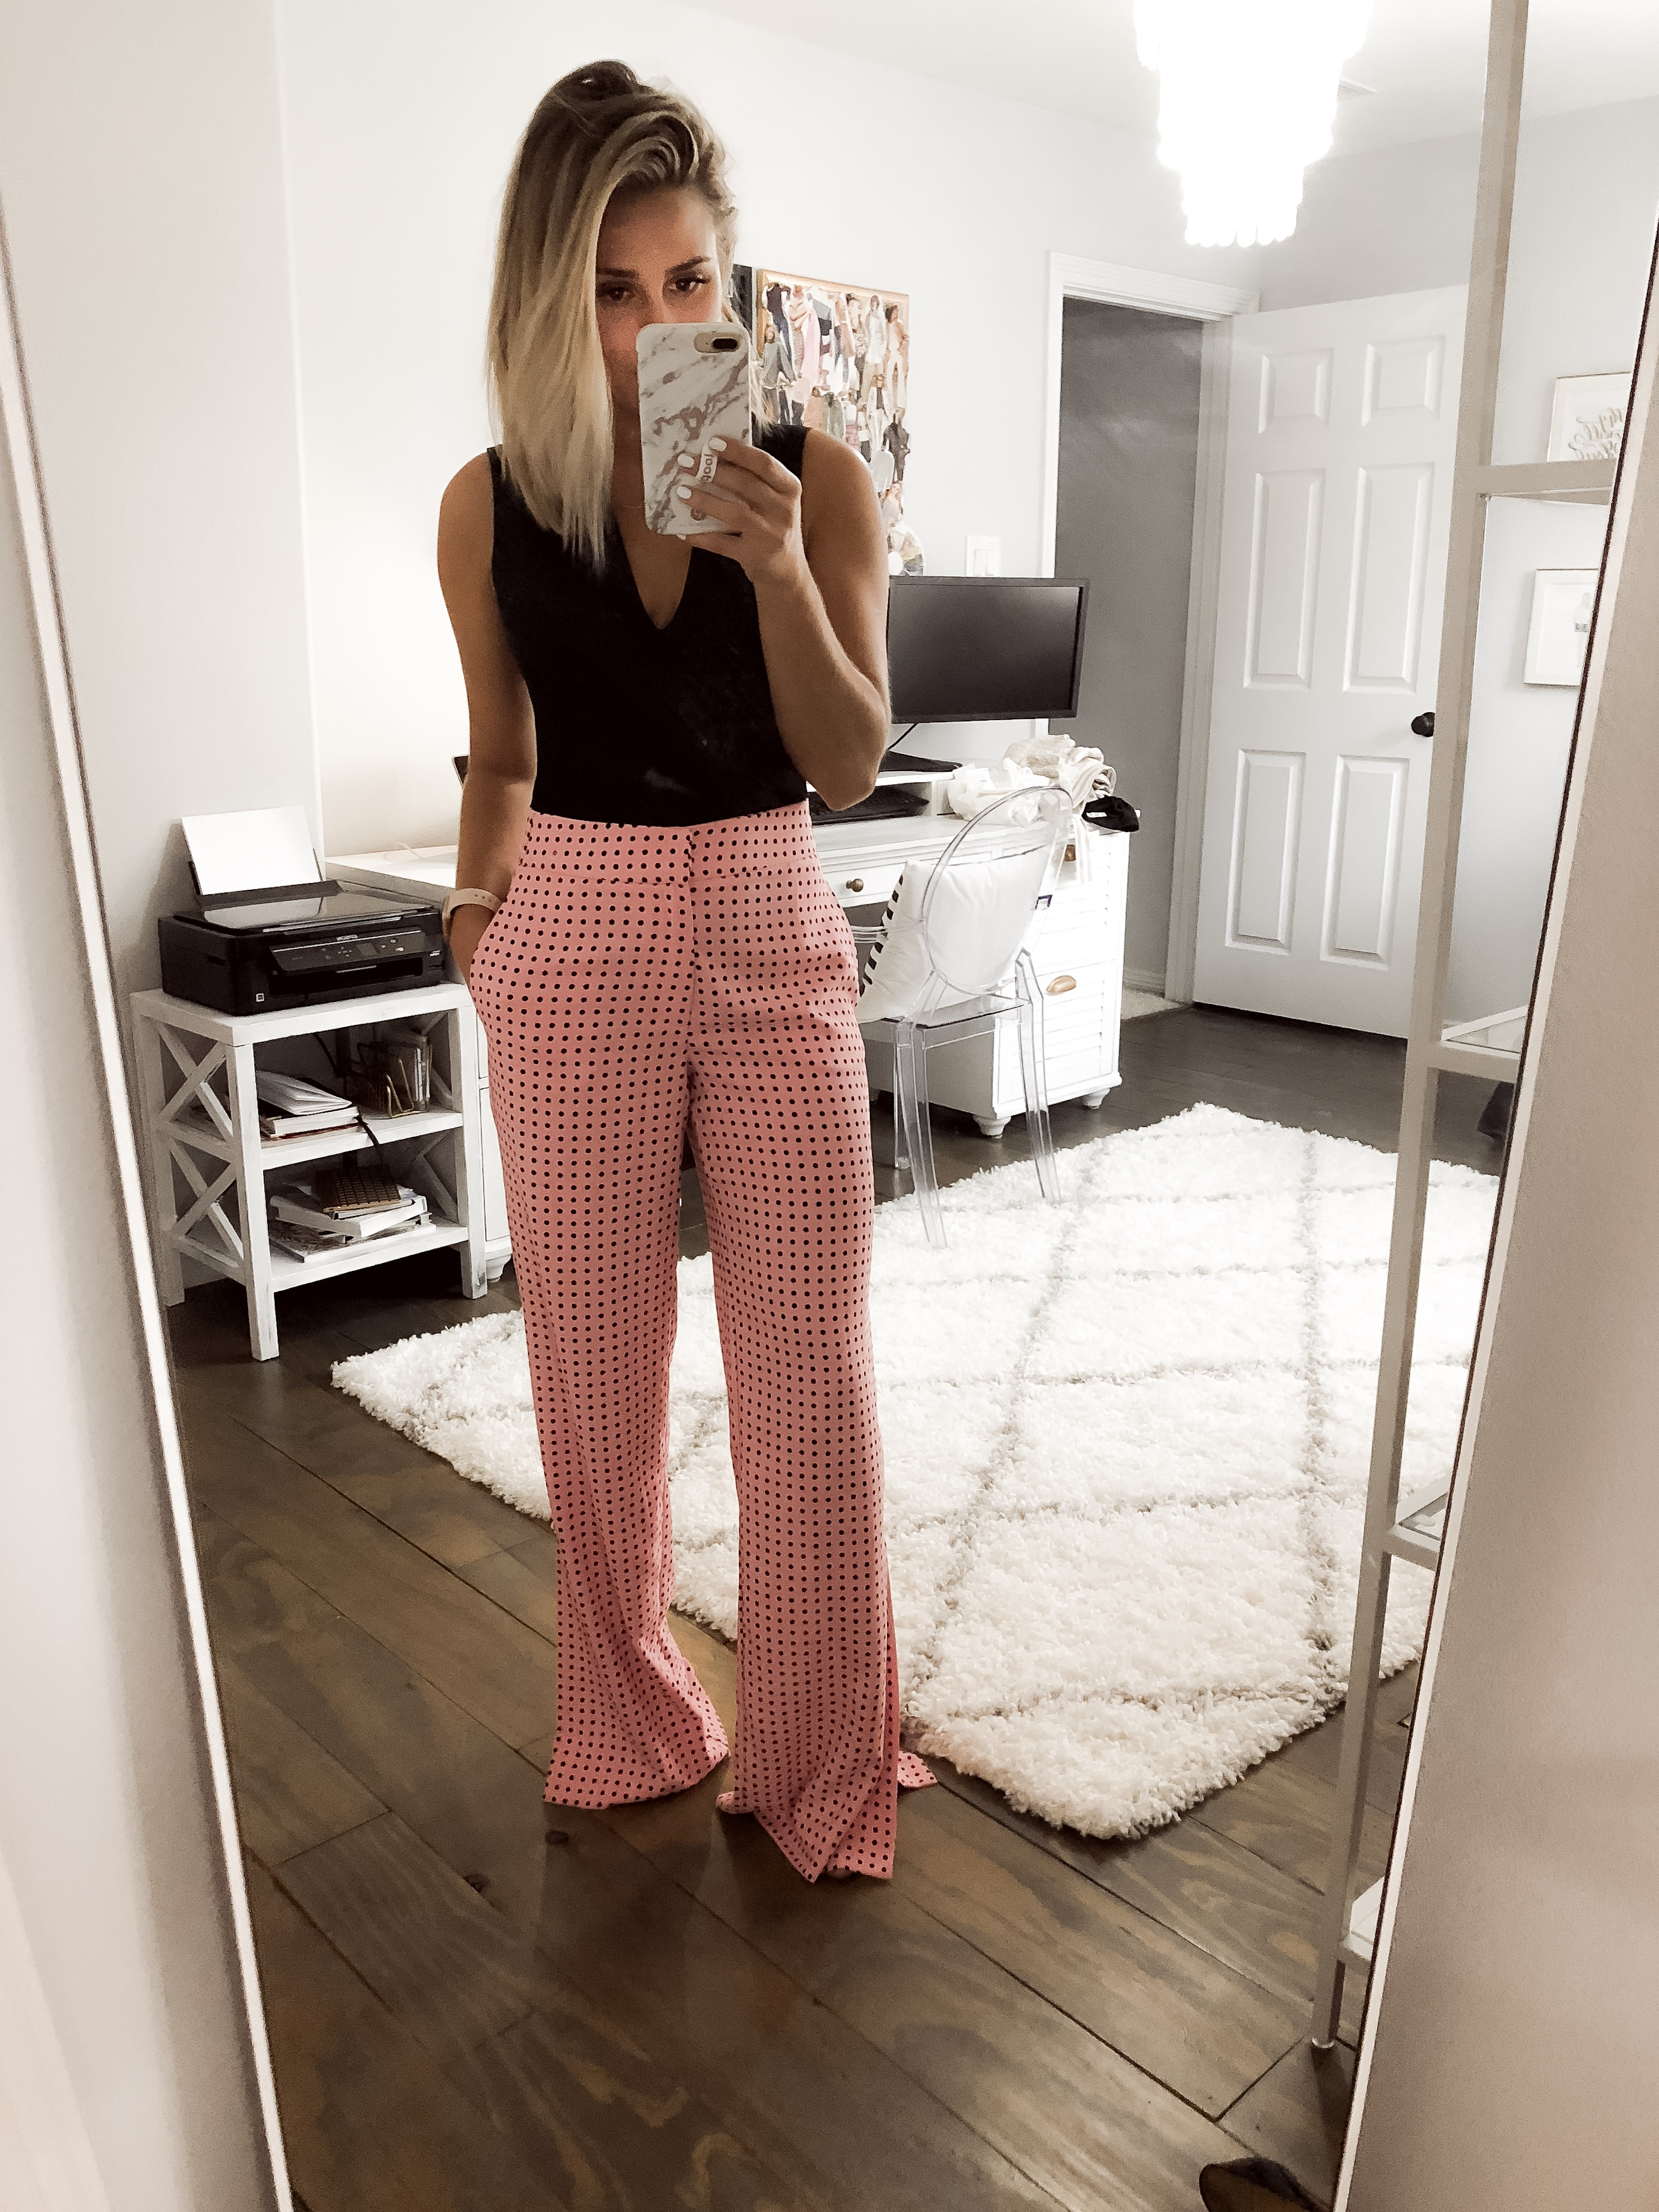 Houston fashion blogger Uptown with Elly Brown shares her Zara Haul and her favorites items in store today! Click here for more!